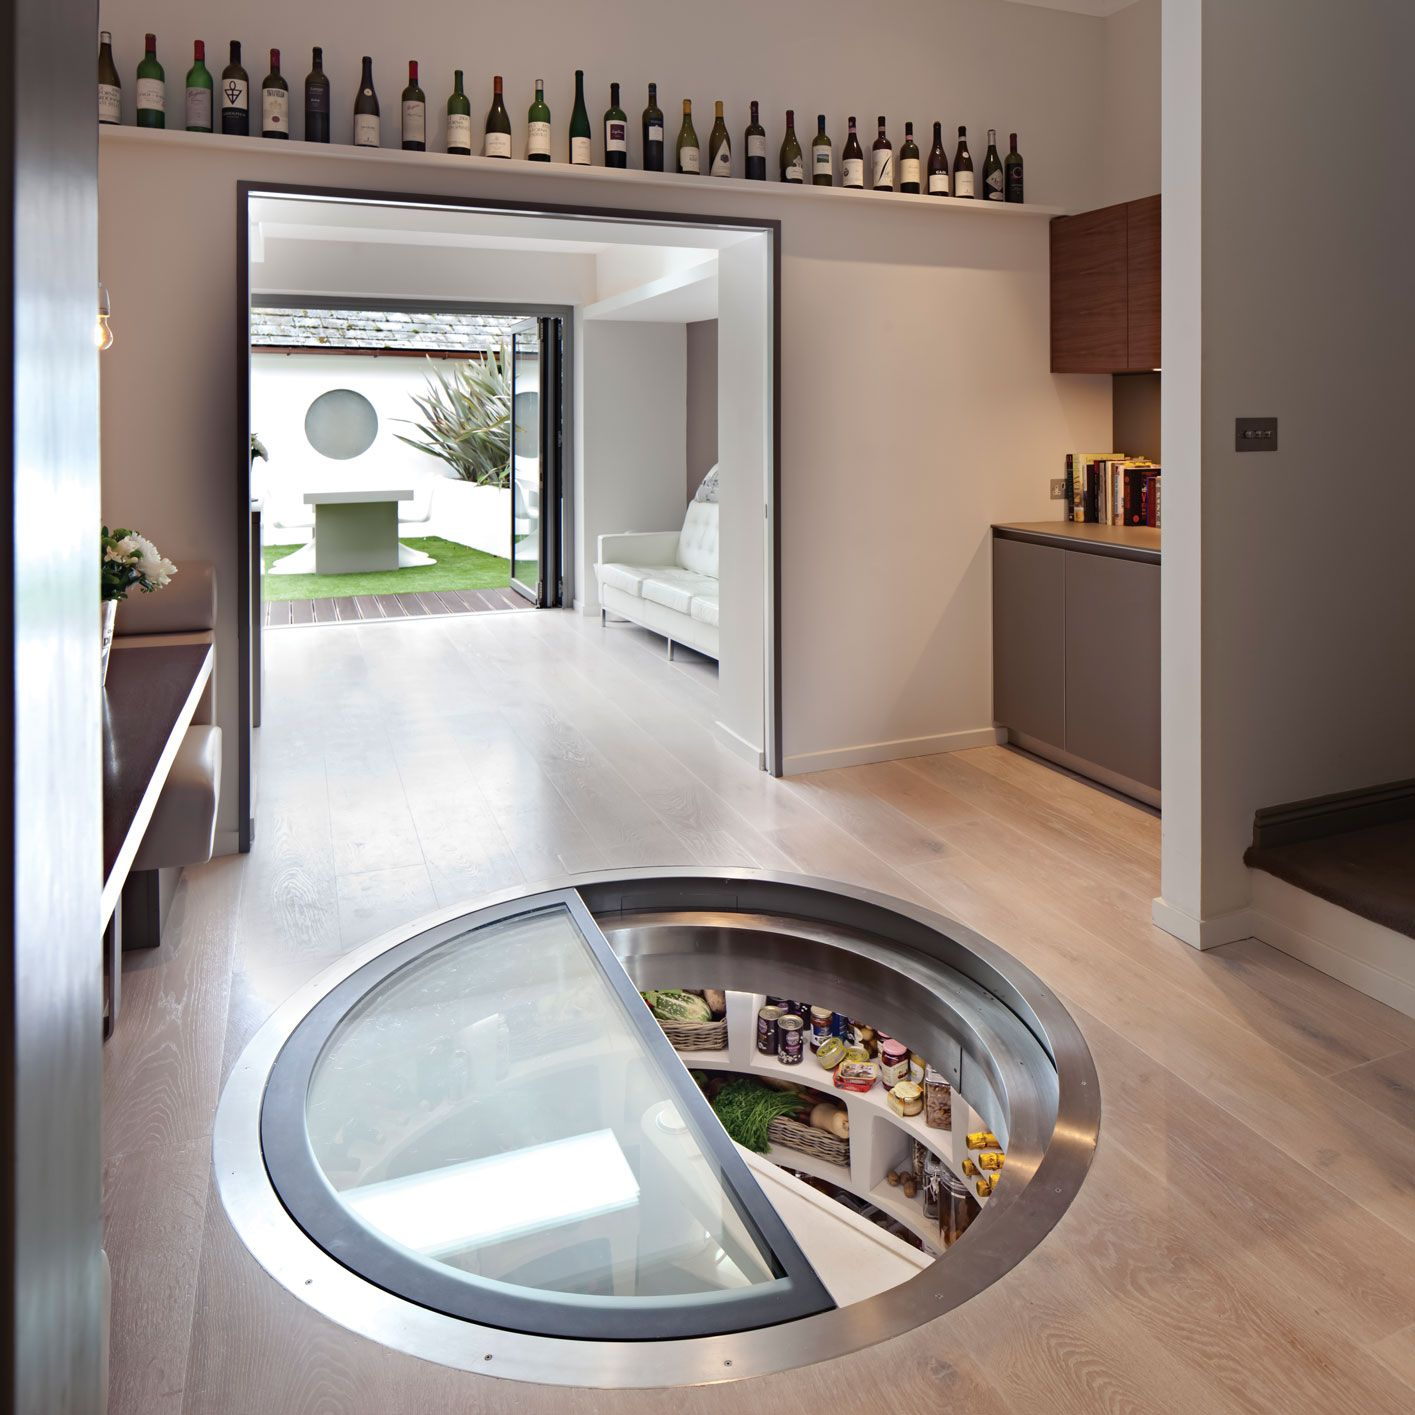 Larder Whit Spiral Staircase With Retractable Round Trap Door